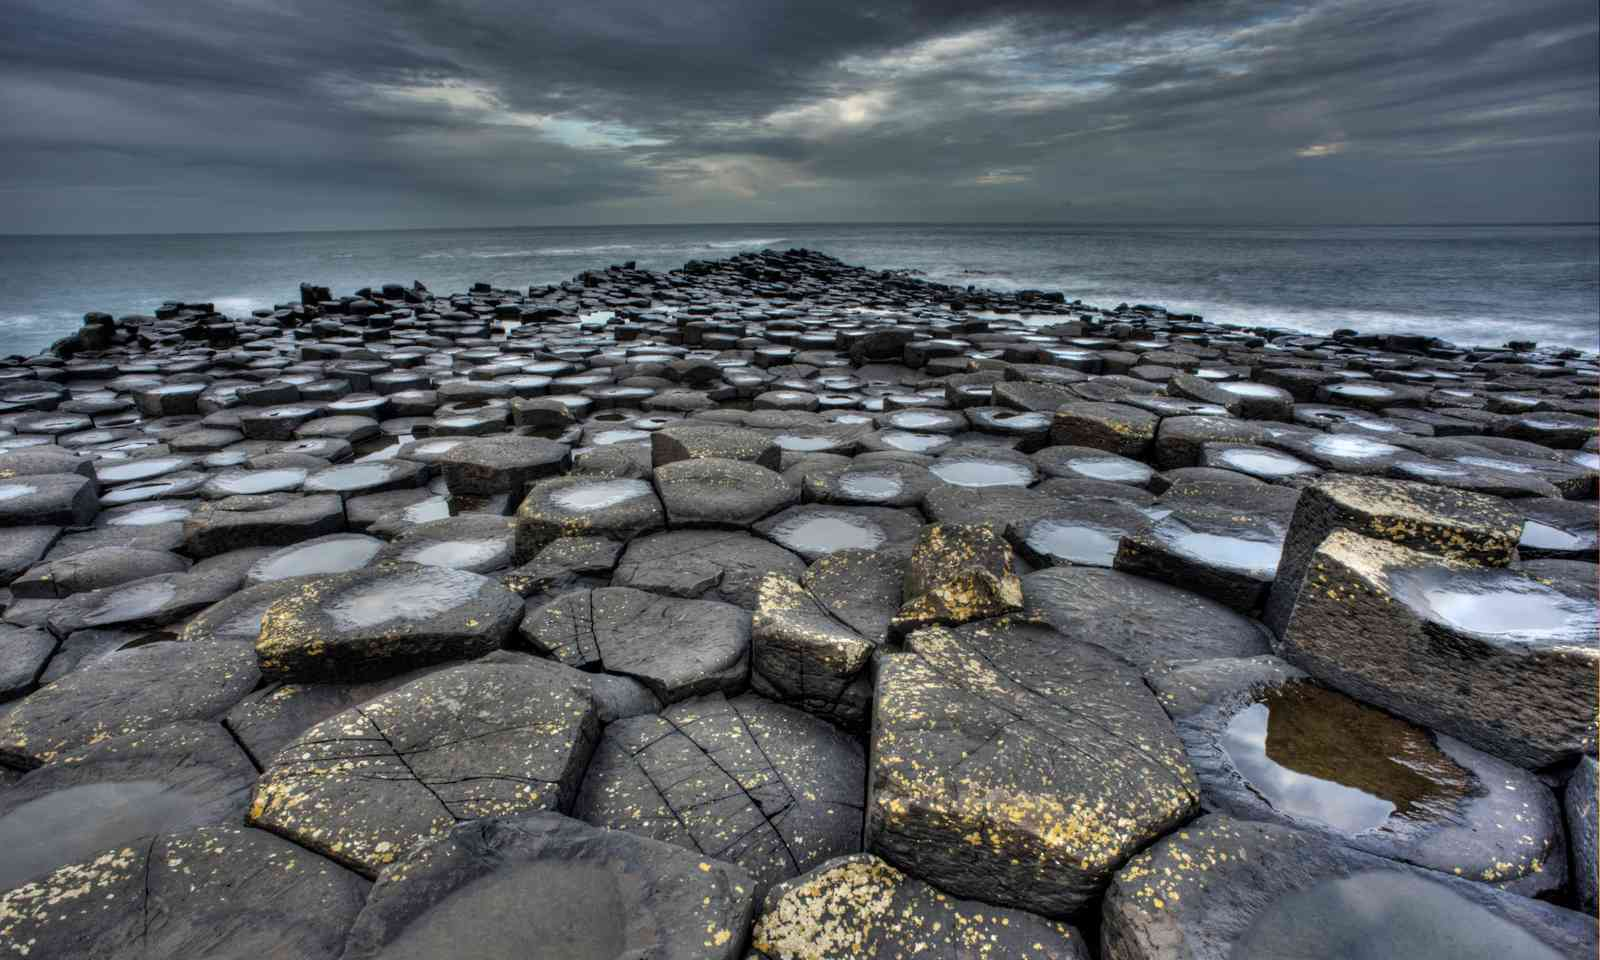 The basalt columns of the Giant's Causeway (Dreamstime)